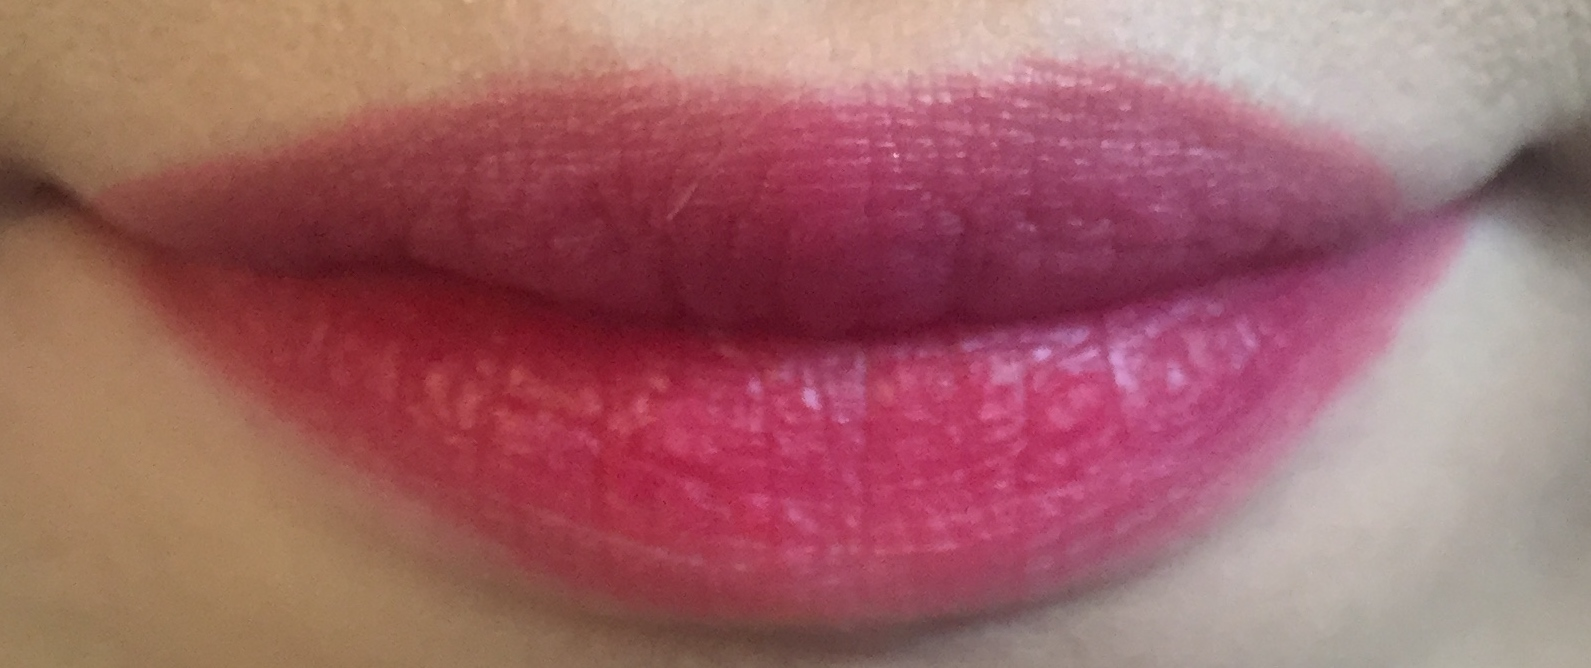 An Unbiased Review Of Younique Lip Products I M Not A Presenter